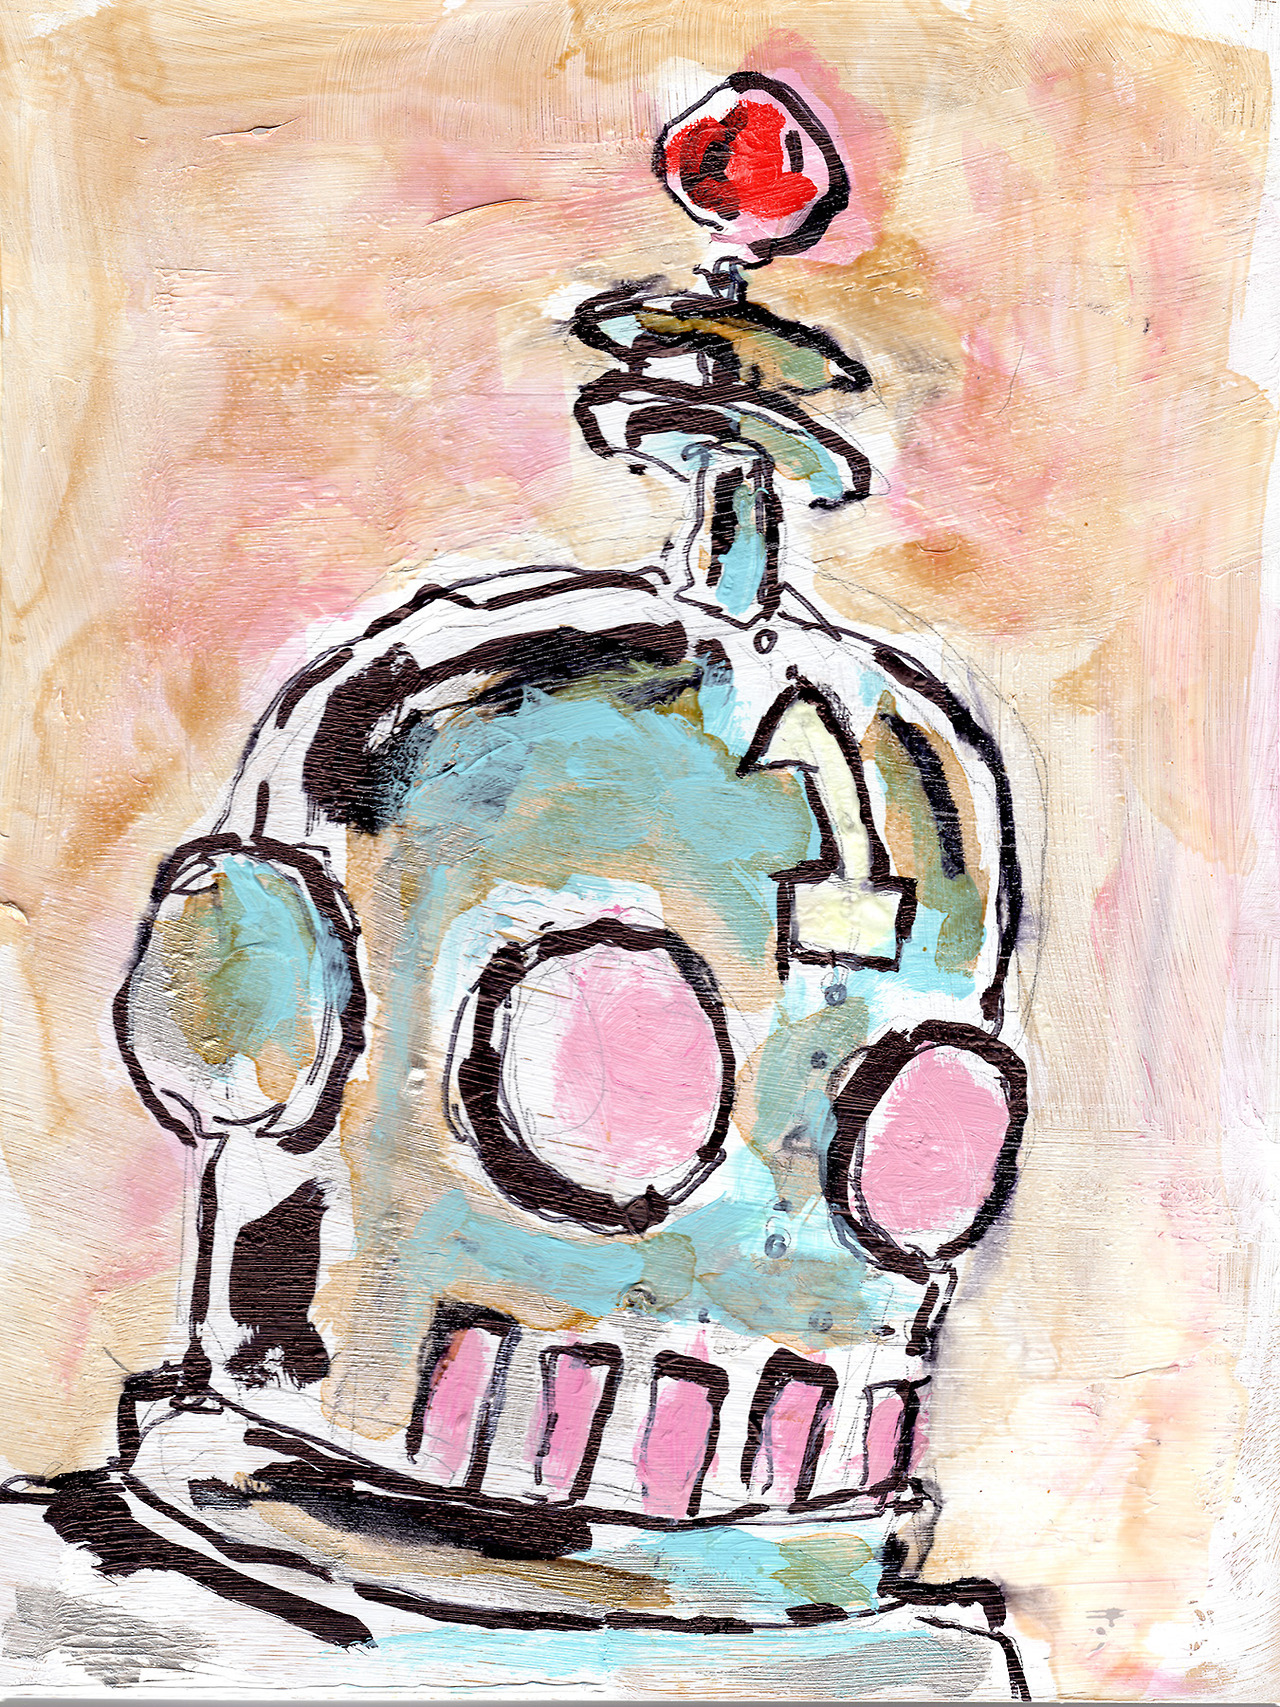 "3/10/13 - Hey That Looks Just Like That One Robot!  Daylight savings makes my brainbox hurt. 9"" x 12"" Acrylic paint, shellac, sharpie, pencil on birch panel. Available to purchase here: http://taylorwinder.bigcartel.com SOLD. Prints available here: http://society6.com/taylorwinder"